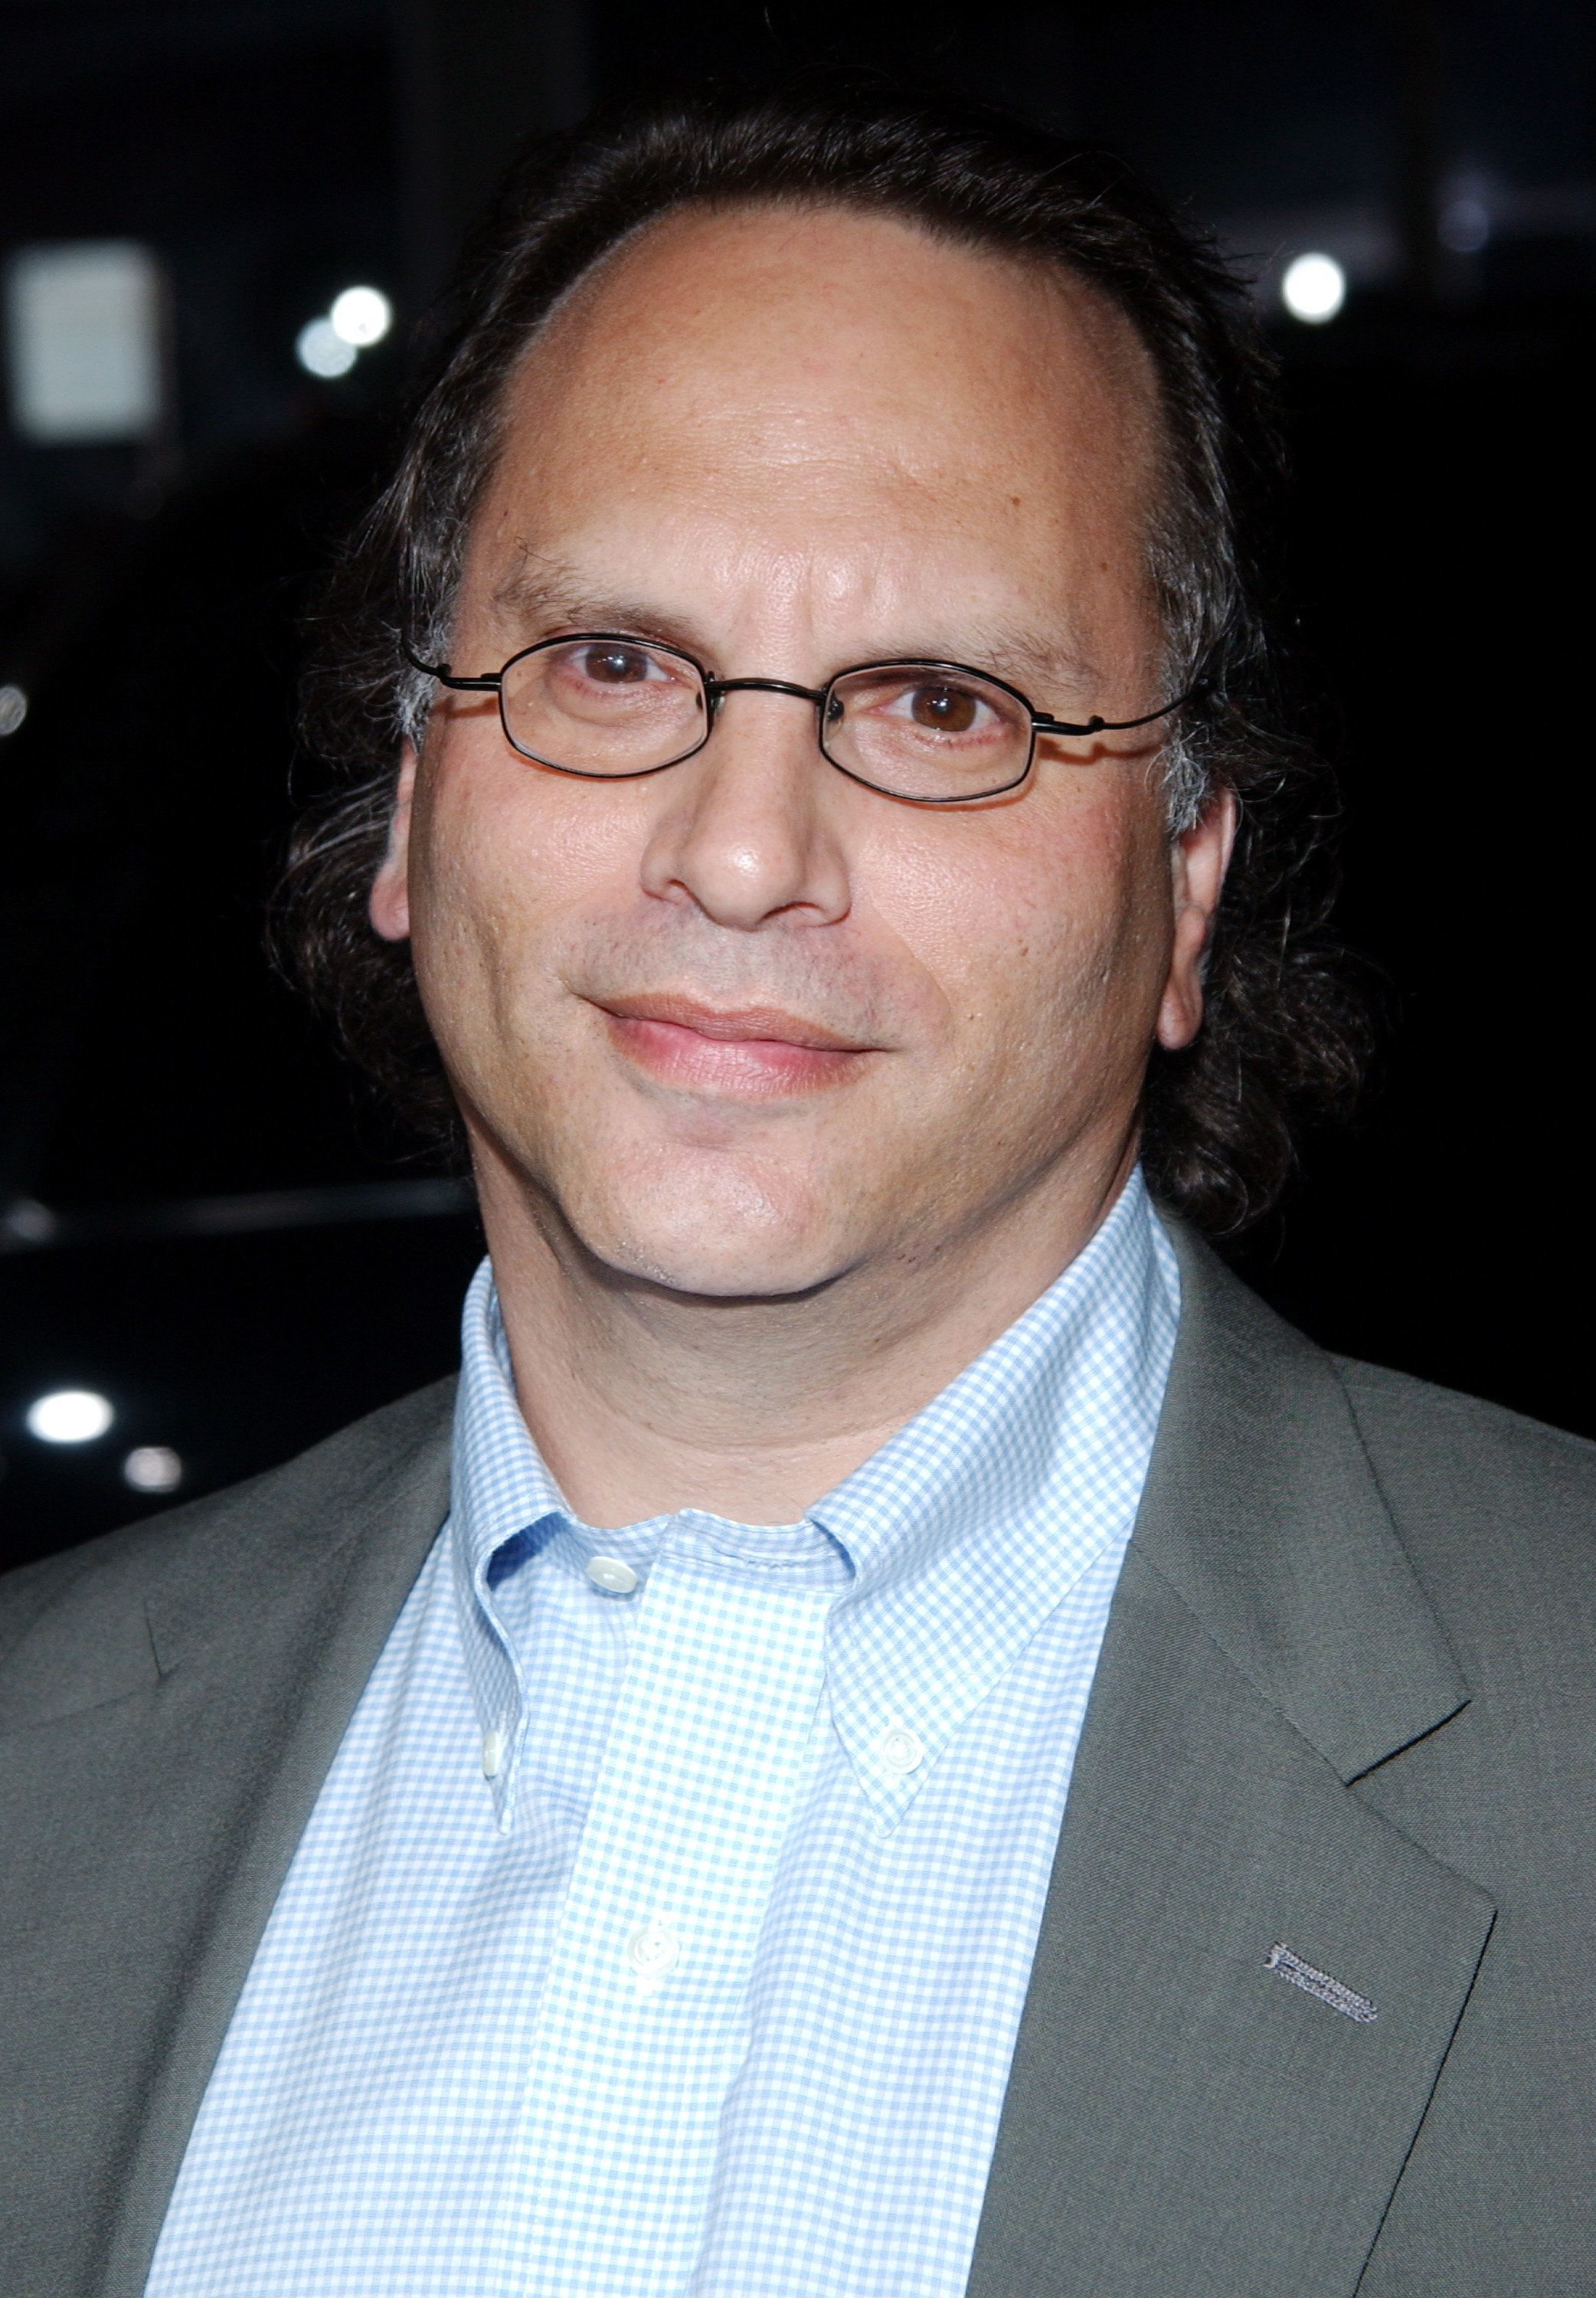 H.G. 'Buzz' Bissinger, author during 'Friday Night Lights' - World Premiere at Grauman's Chinese Theatre in Hollywood, California, United States. (Photo by Jon Kopaloff/FilmMagic)